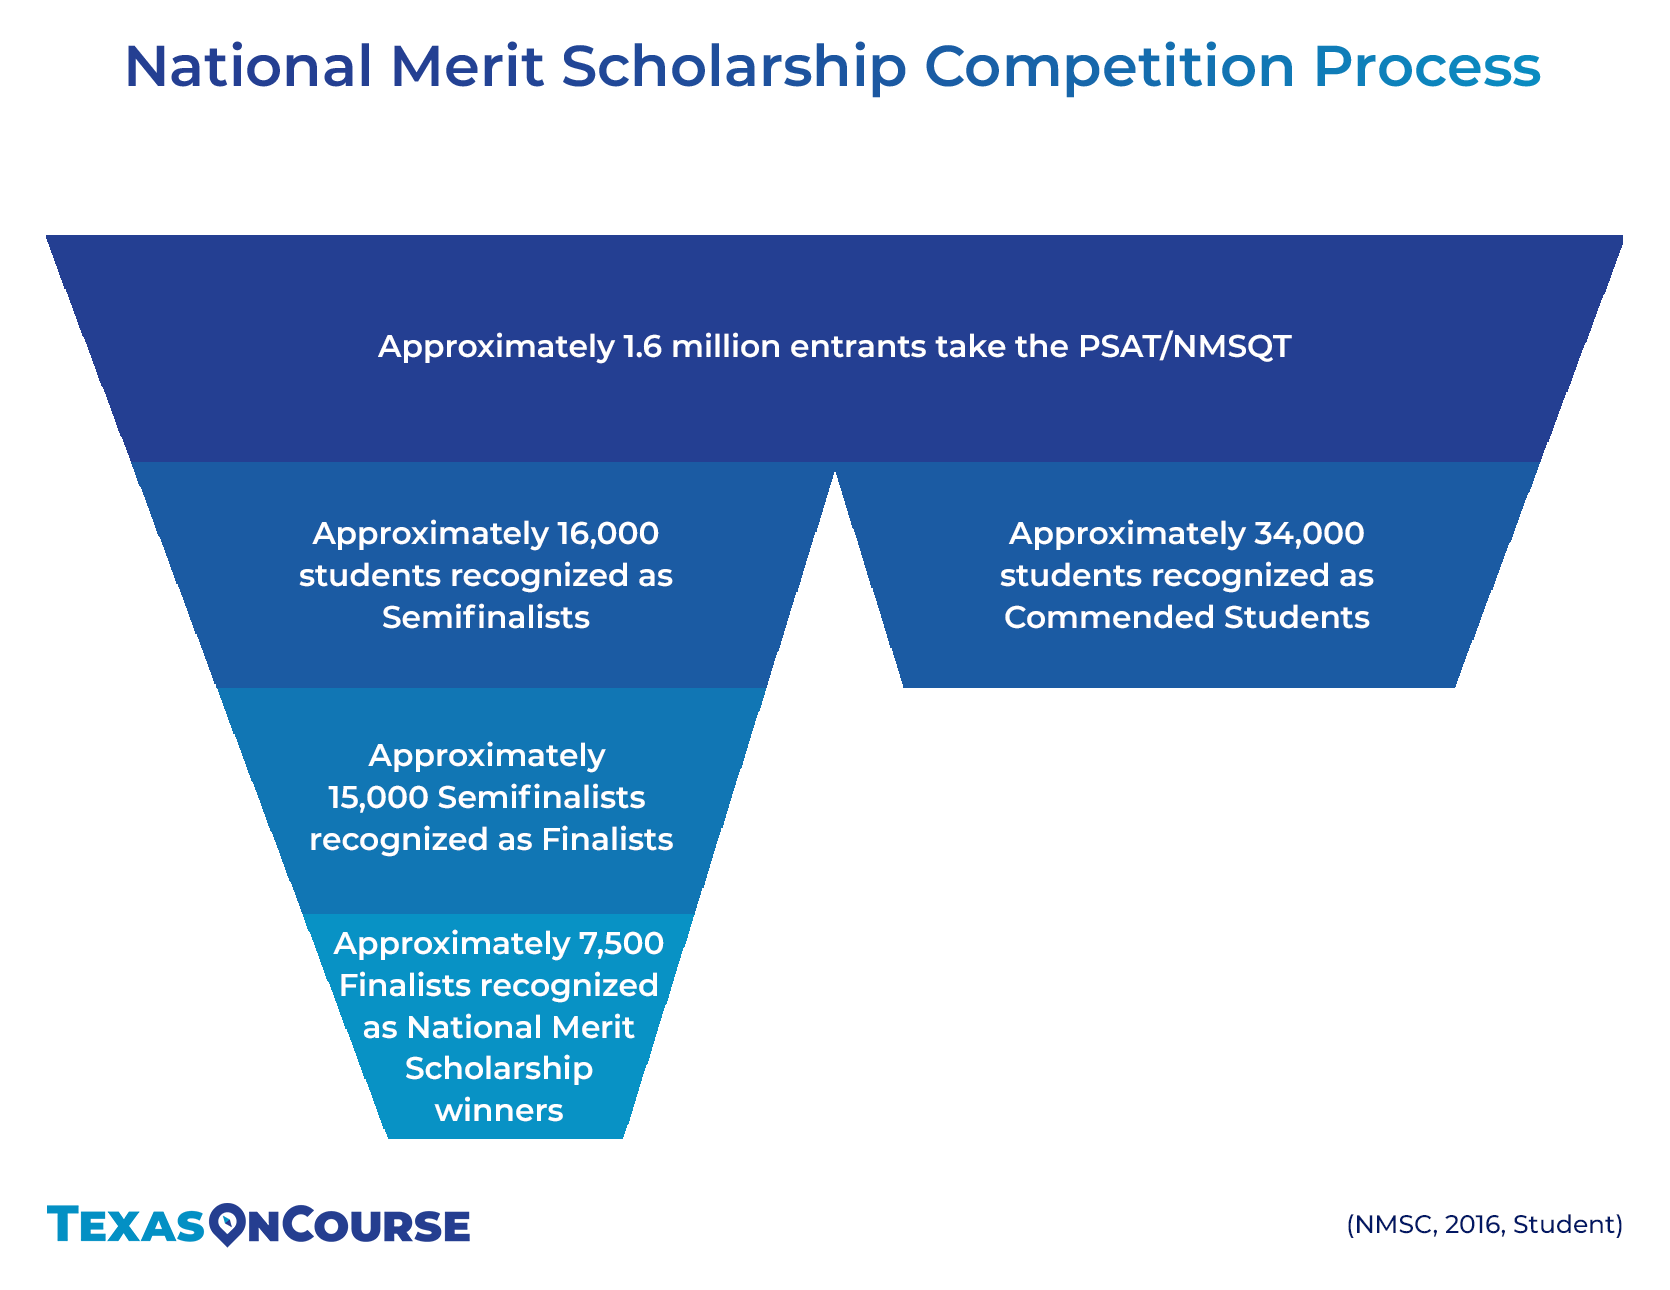 Resources for National Merit Scholarship | Texas OnCourse